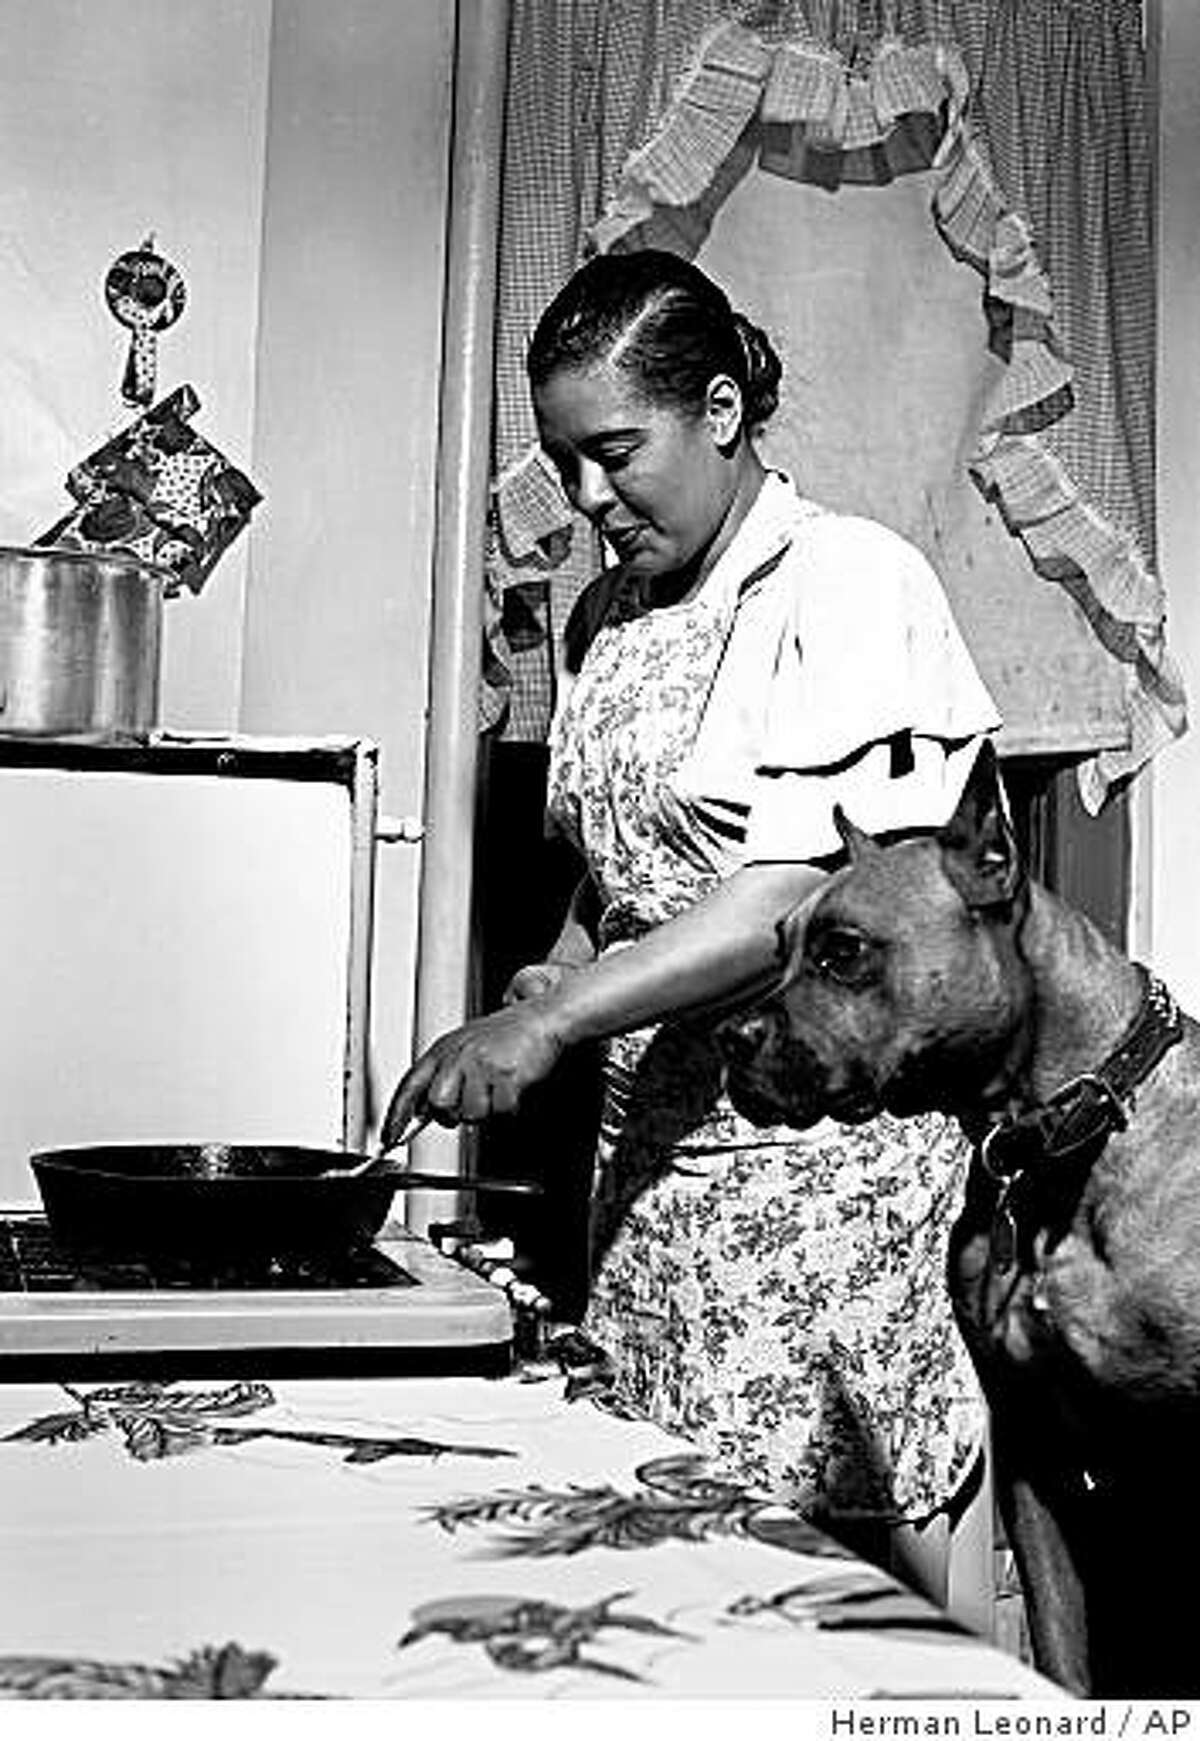 This 1949 photo released by Herman Leonard Photography, shows Billie Holiday cooking a steak for her dog Mister in her apartment in the Harlem neighborhood of New York. The photographer, Herman Leonard, said she came to the door wearing a simple house dress and an apron and